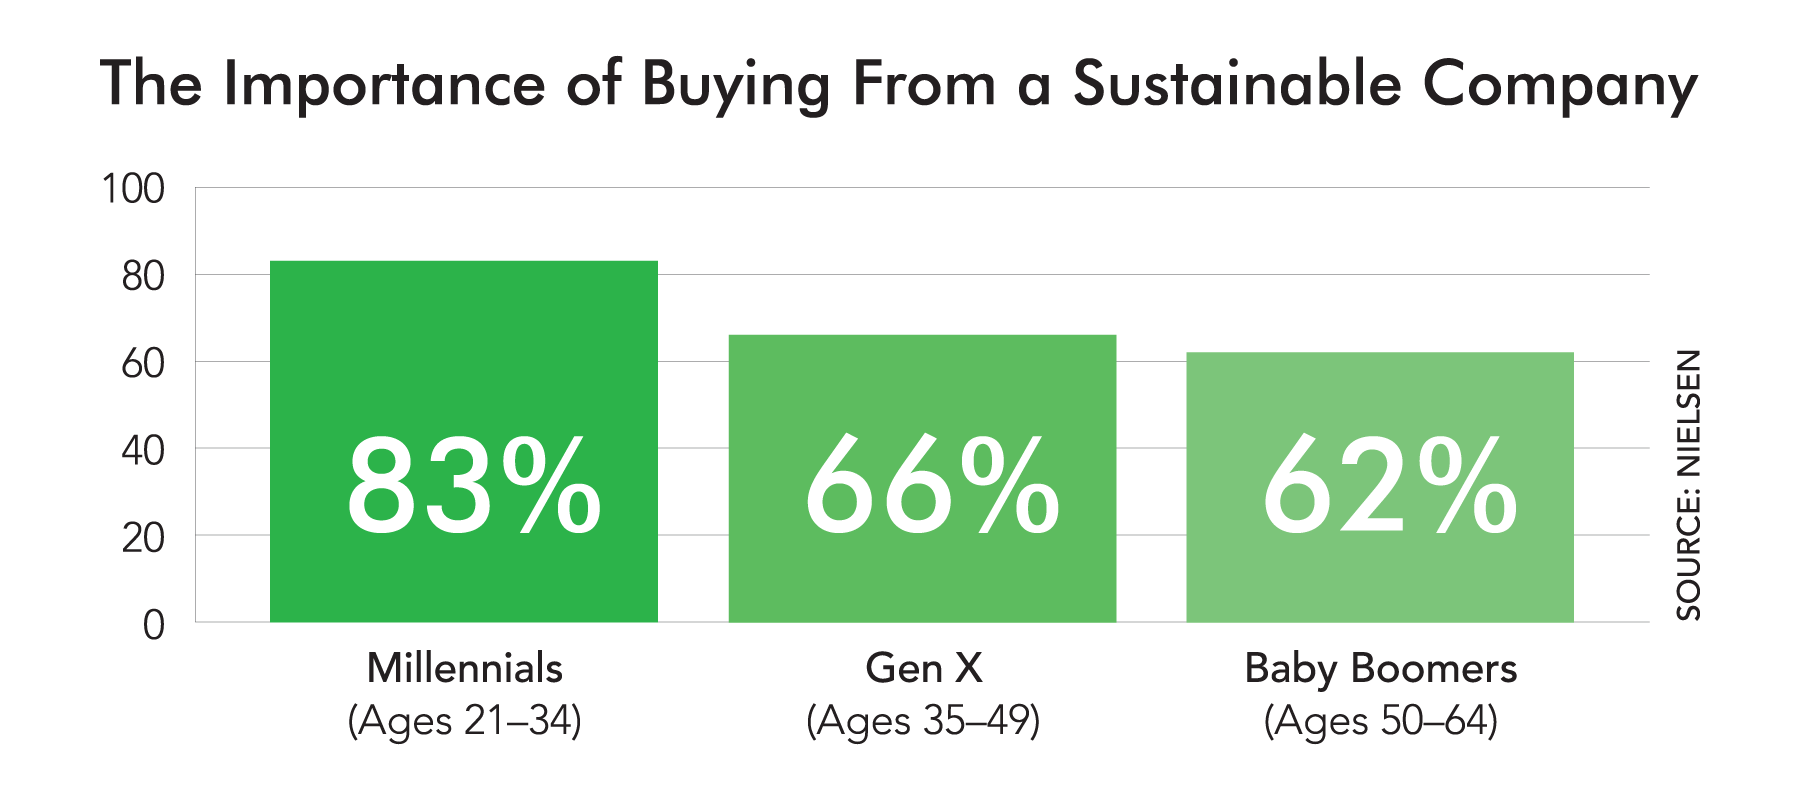 The Importance of Buyung From a Sustainable Company